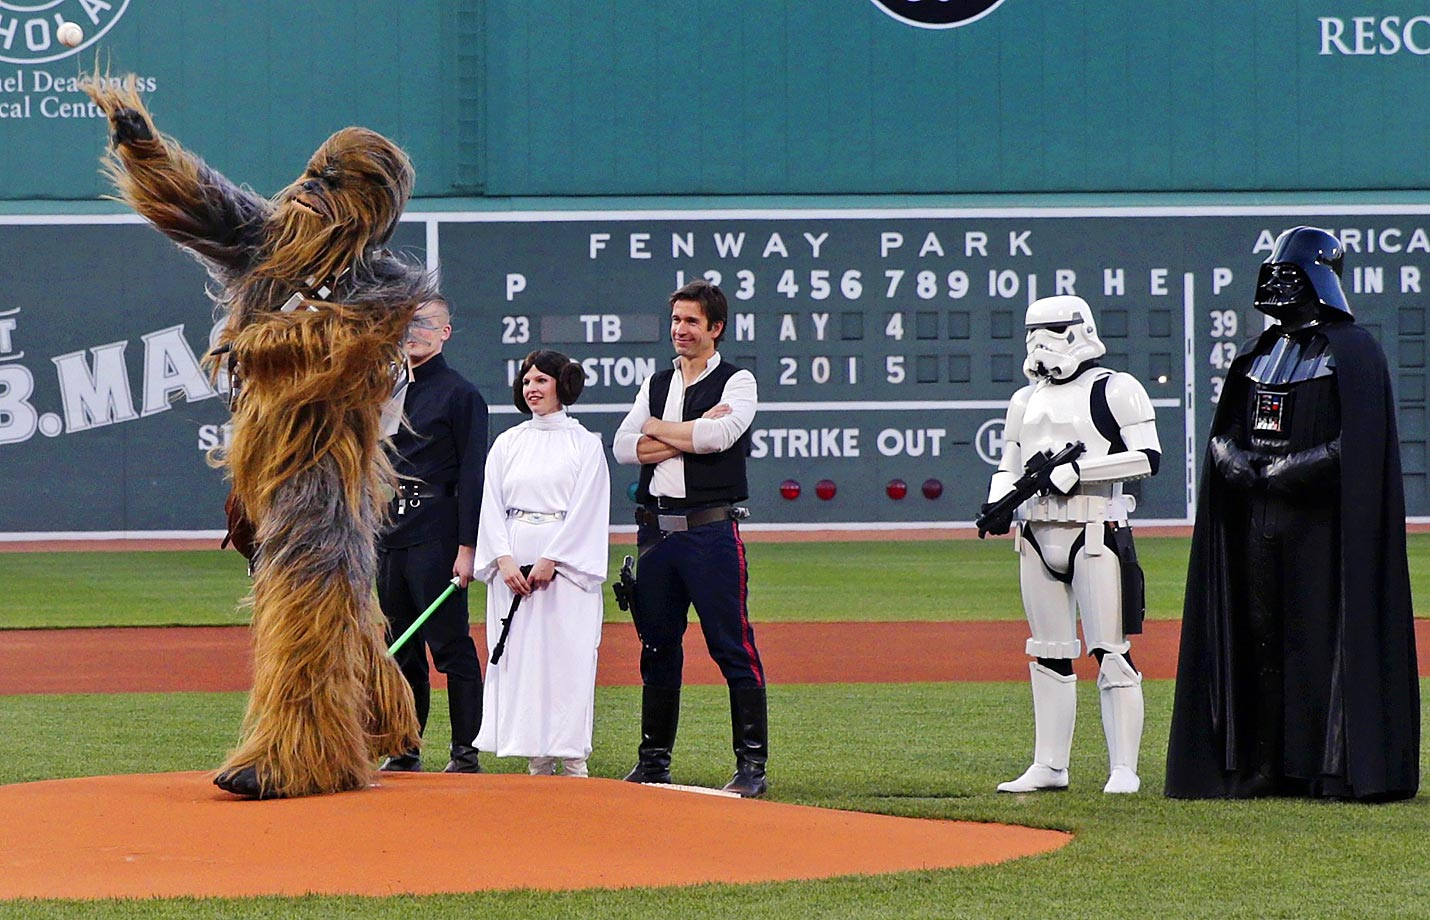 Chewbacca throws the ceremonial first pitch on Star Wars Day at a game between the Rays and Red Sox.